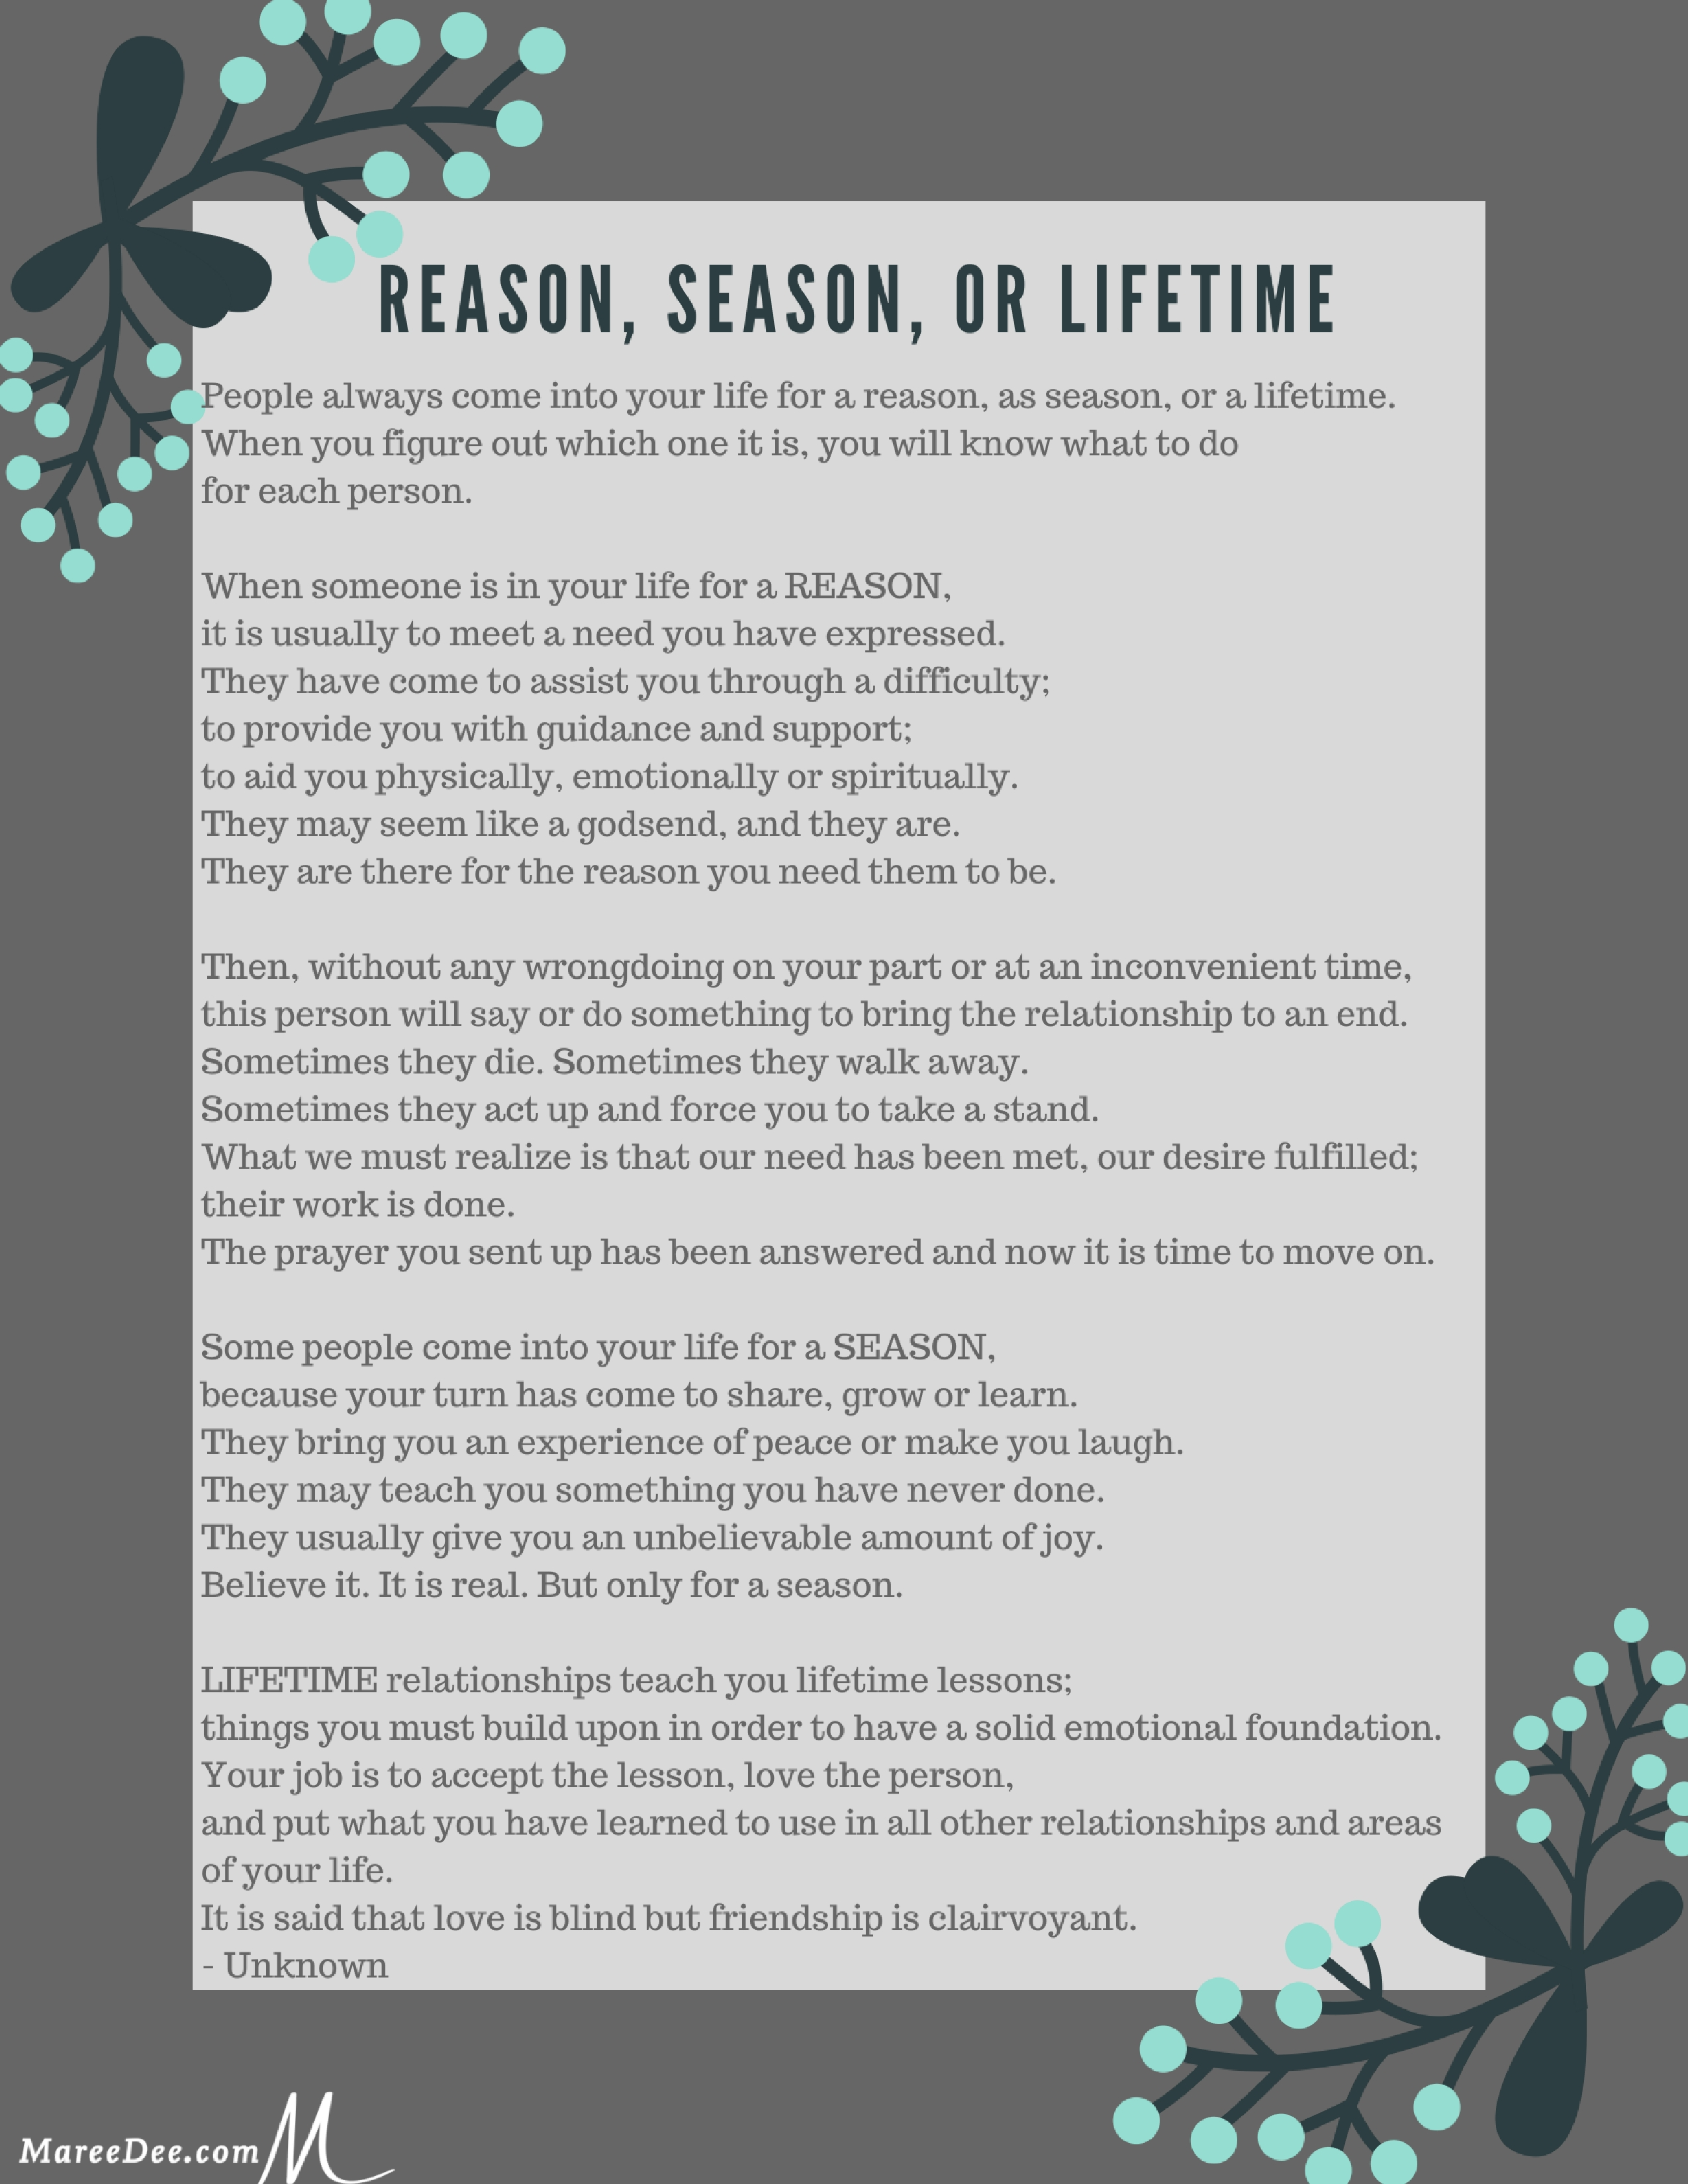 photo relating to Reason Season Lifetime Poem Printable called Why Would I Permit Transfer of a Friendship? Embracing the Surprising